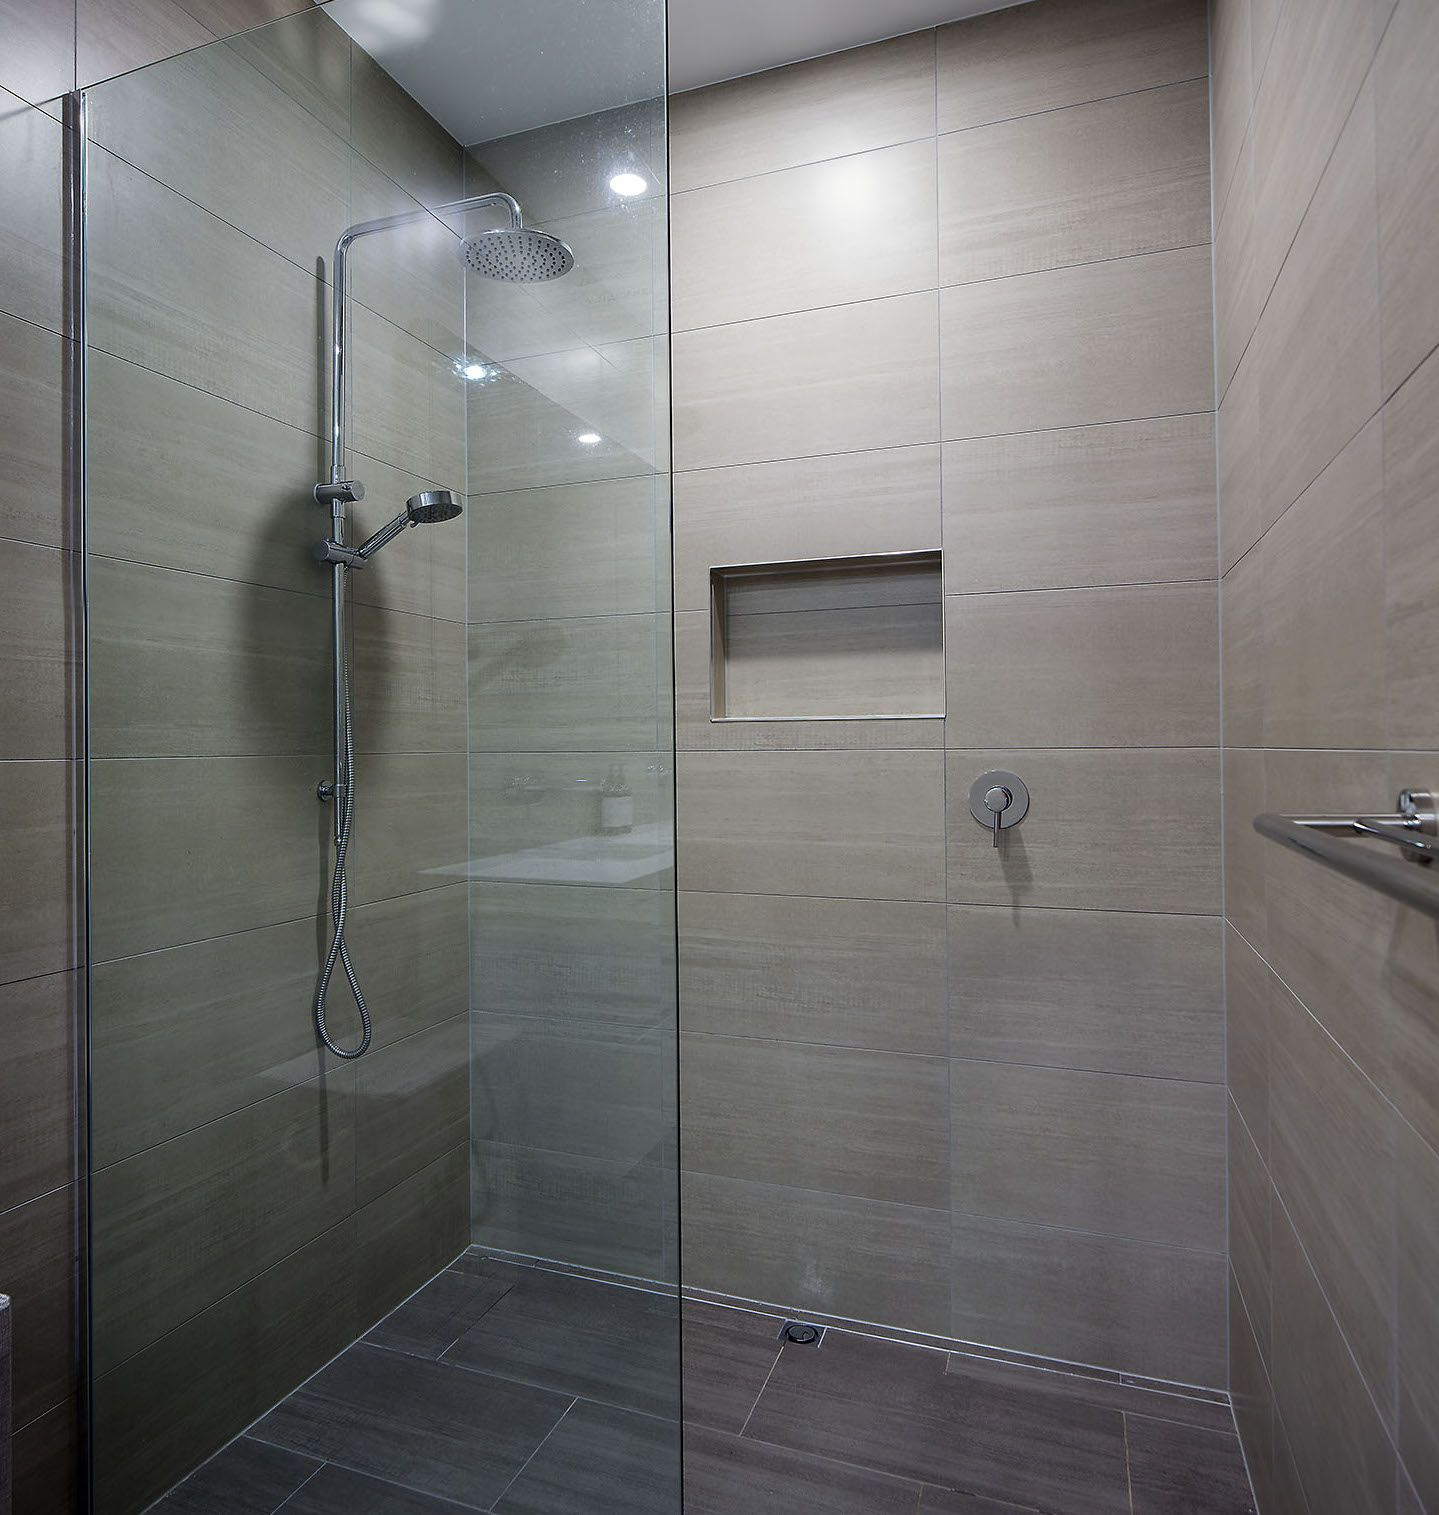 get custom bathroom renovation done in melbourne on bathroom renovation ideas melbourne id=60430